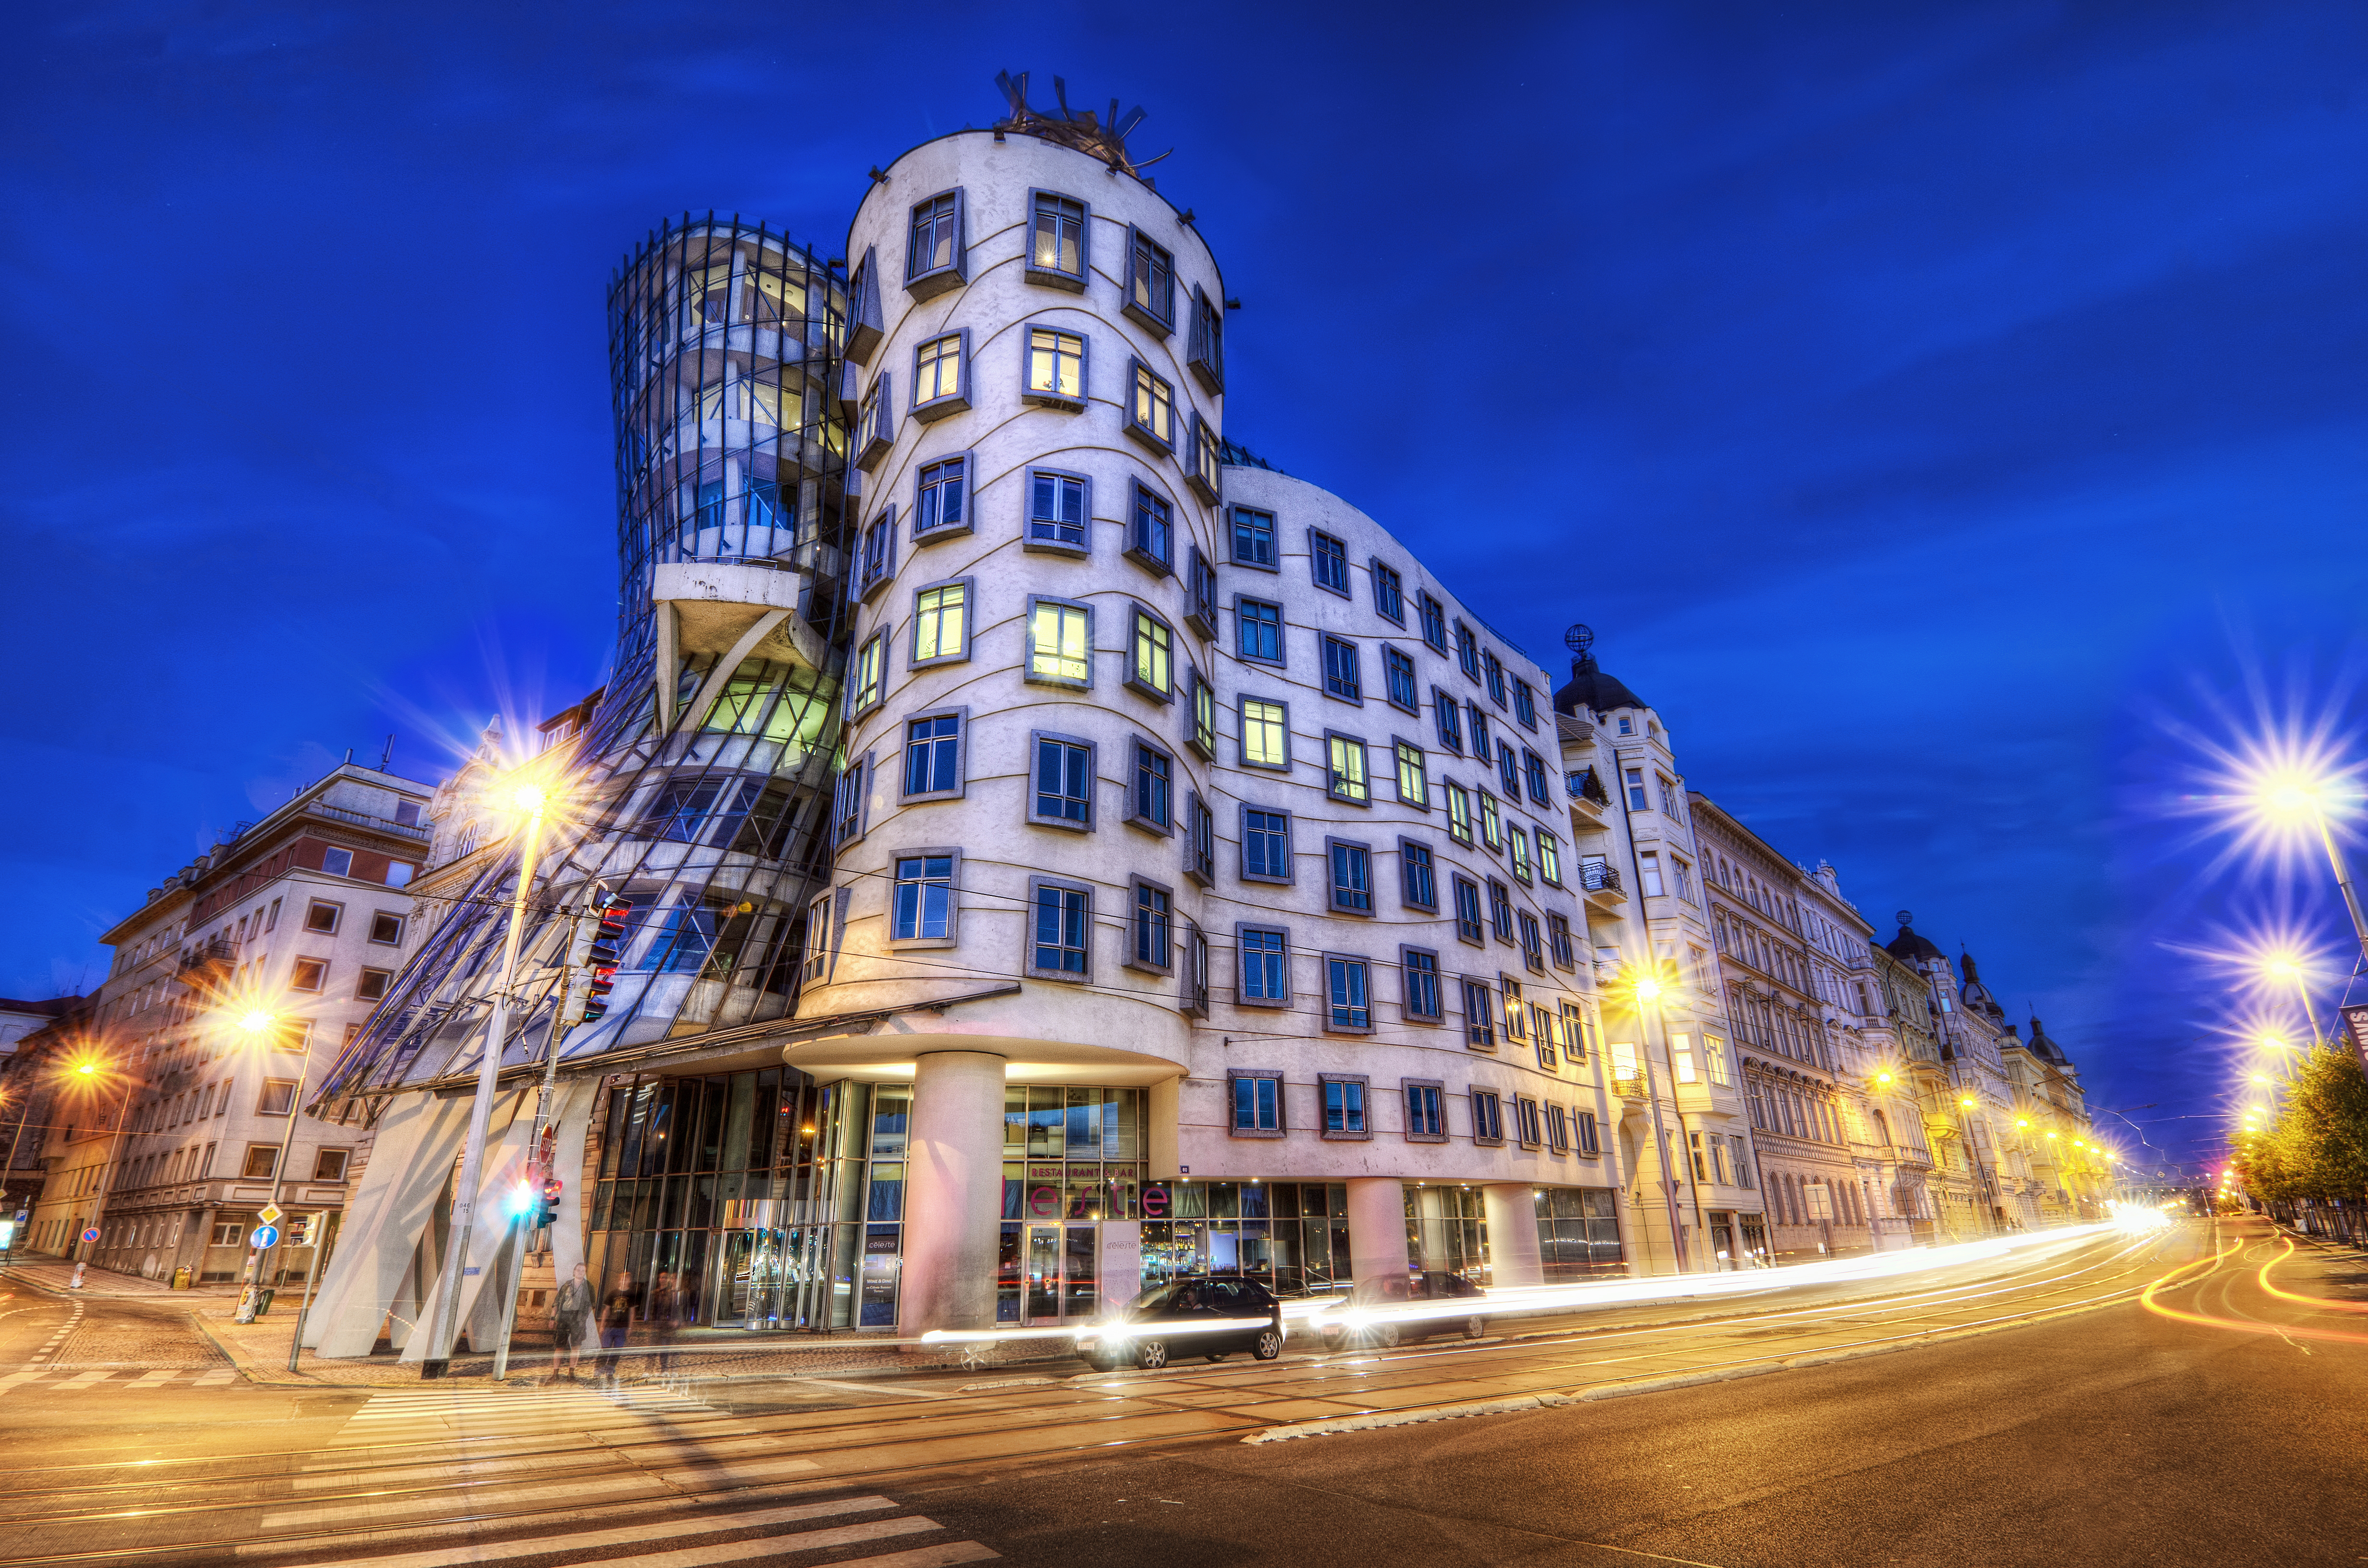 Dancing House - in Prague - Thousand Wonders